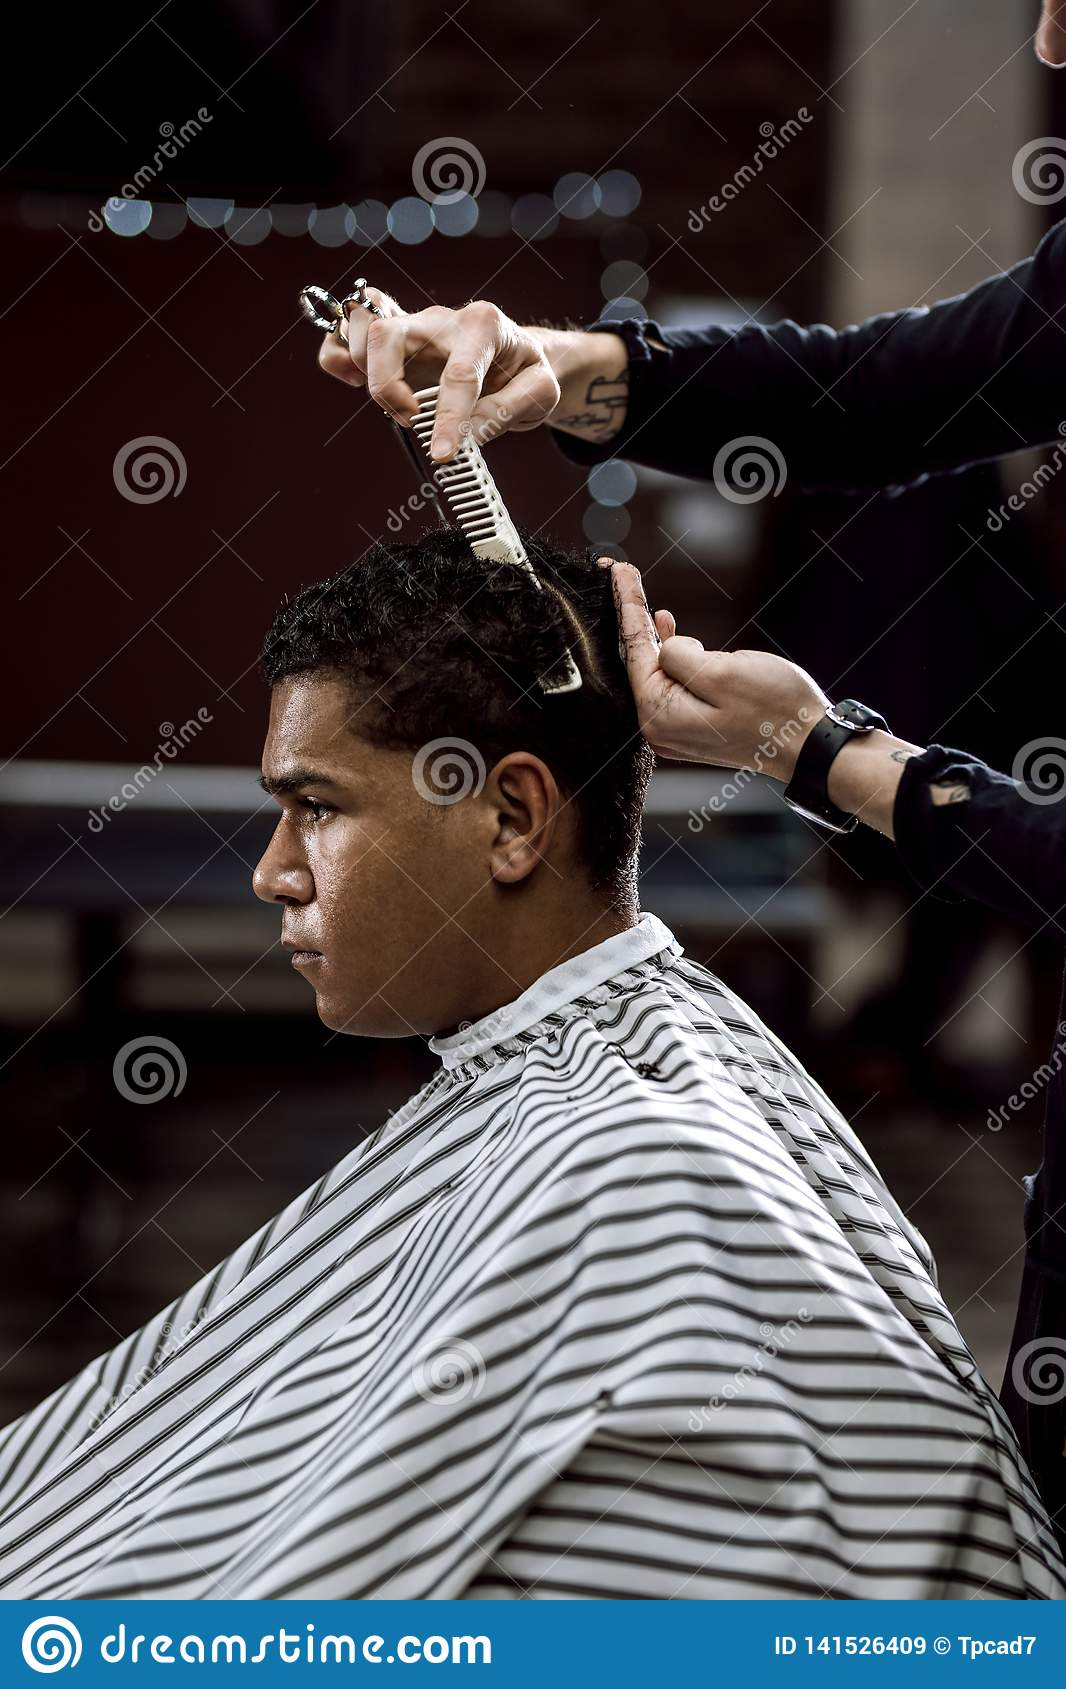 The barber is cutting a man`s hair holding scissors and comb in his hands opposite the mirror in a barbershop